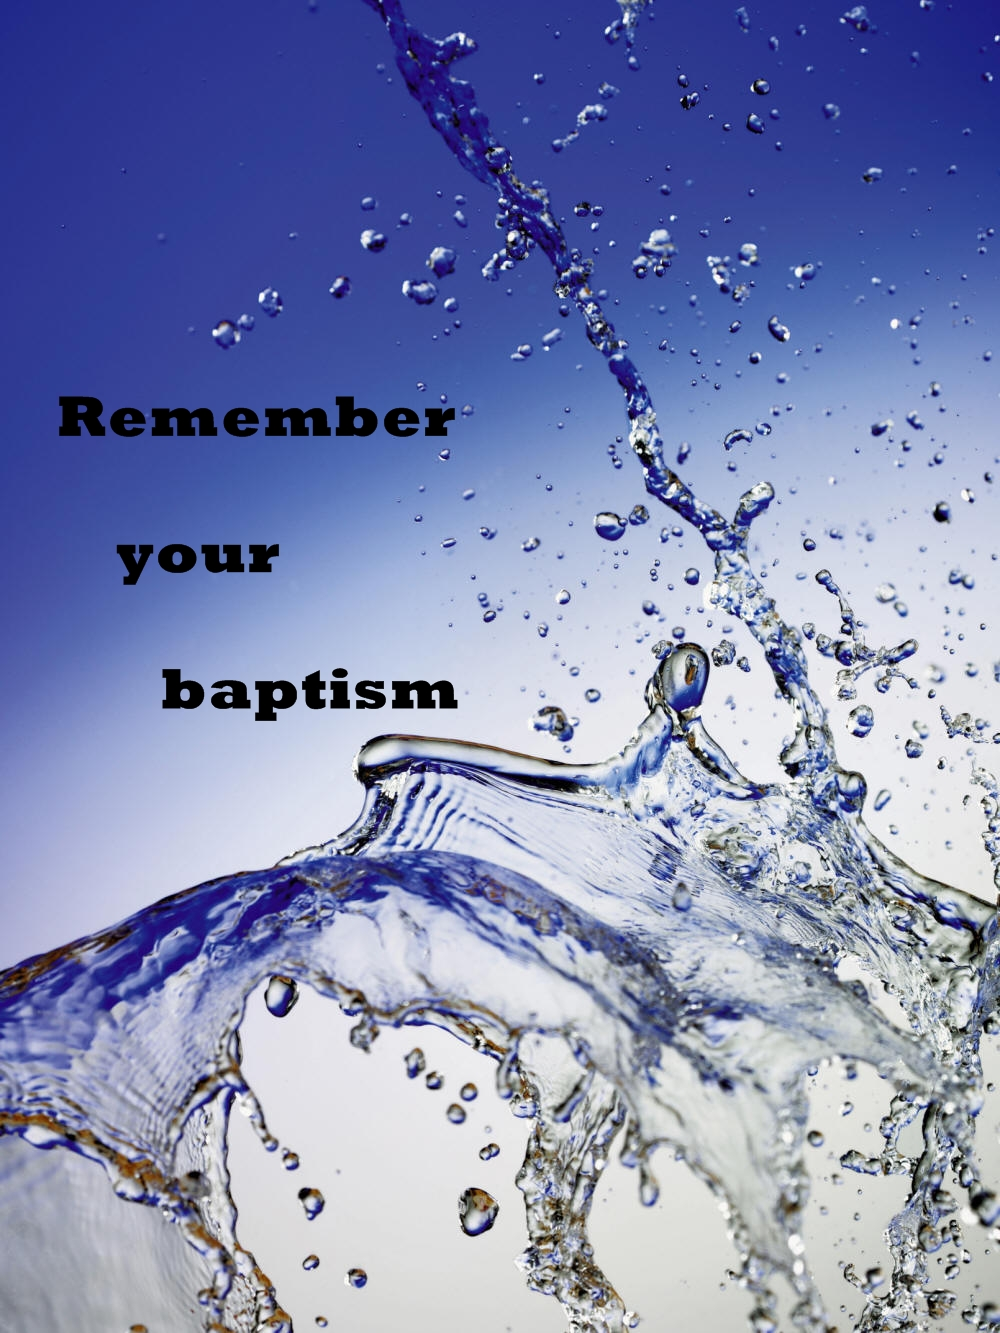 we become disciples of the lord jesus at baptism